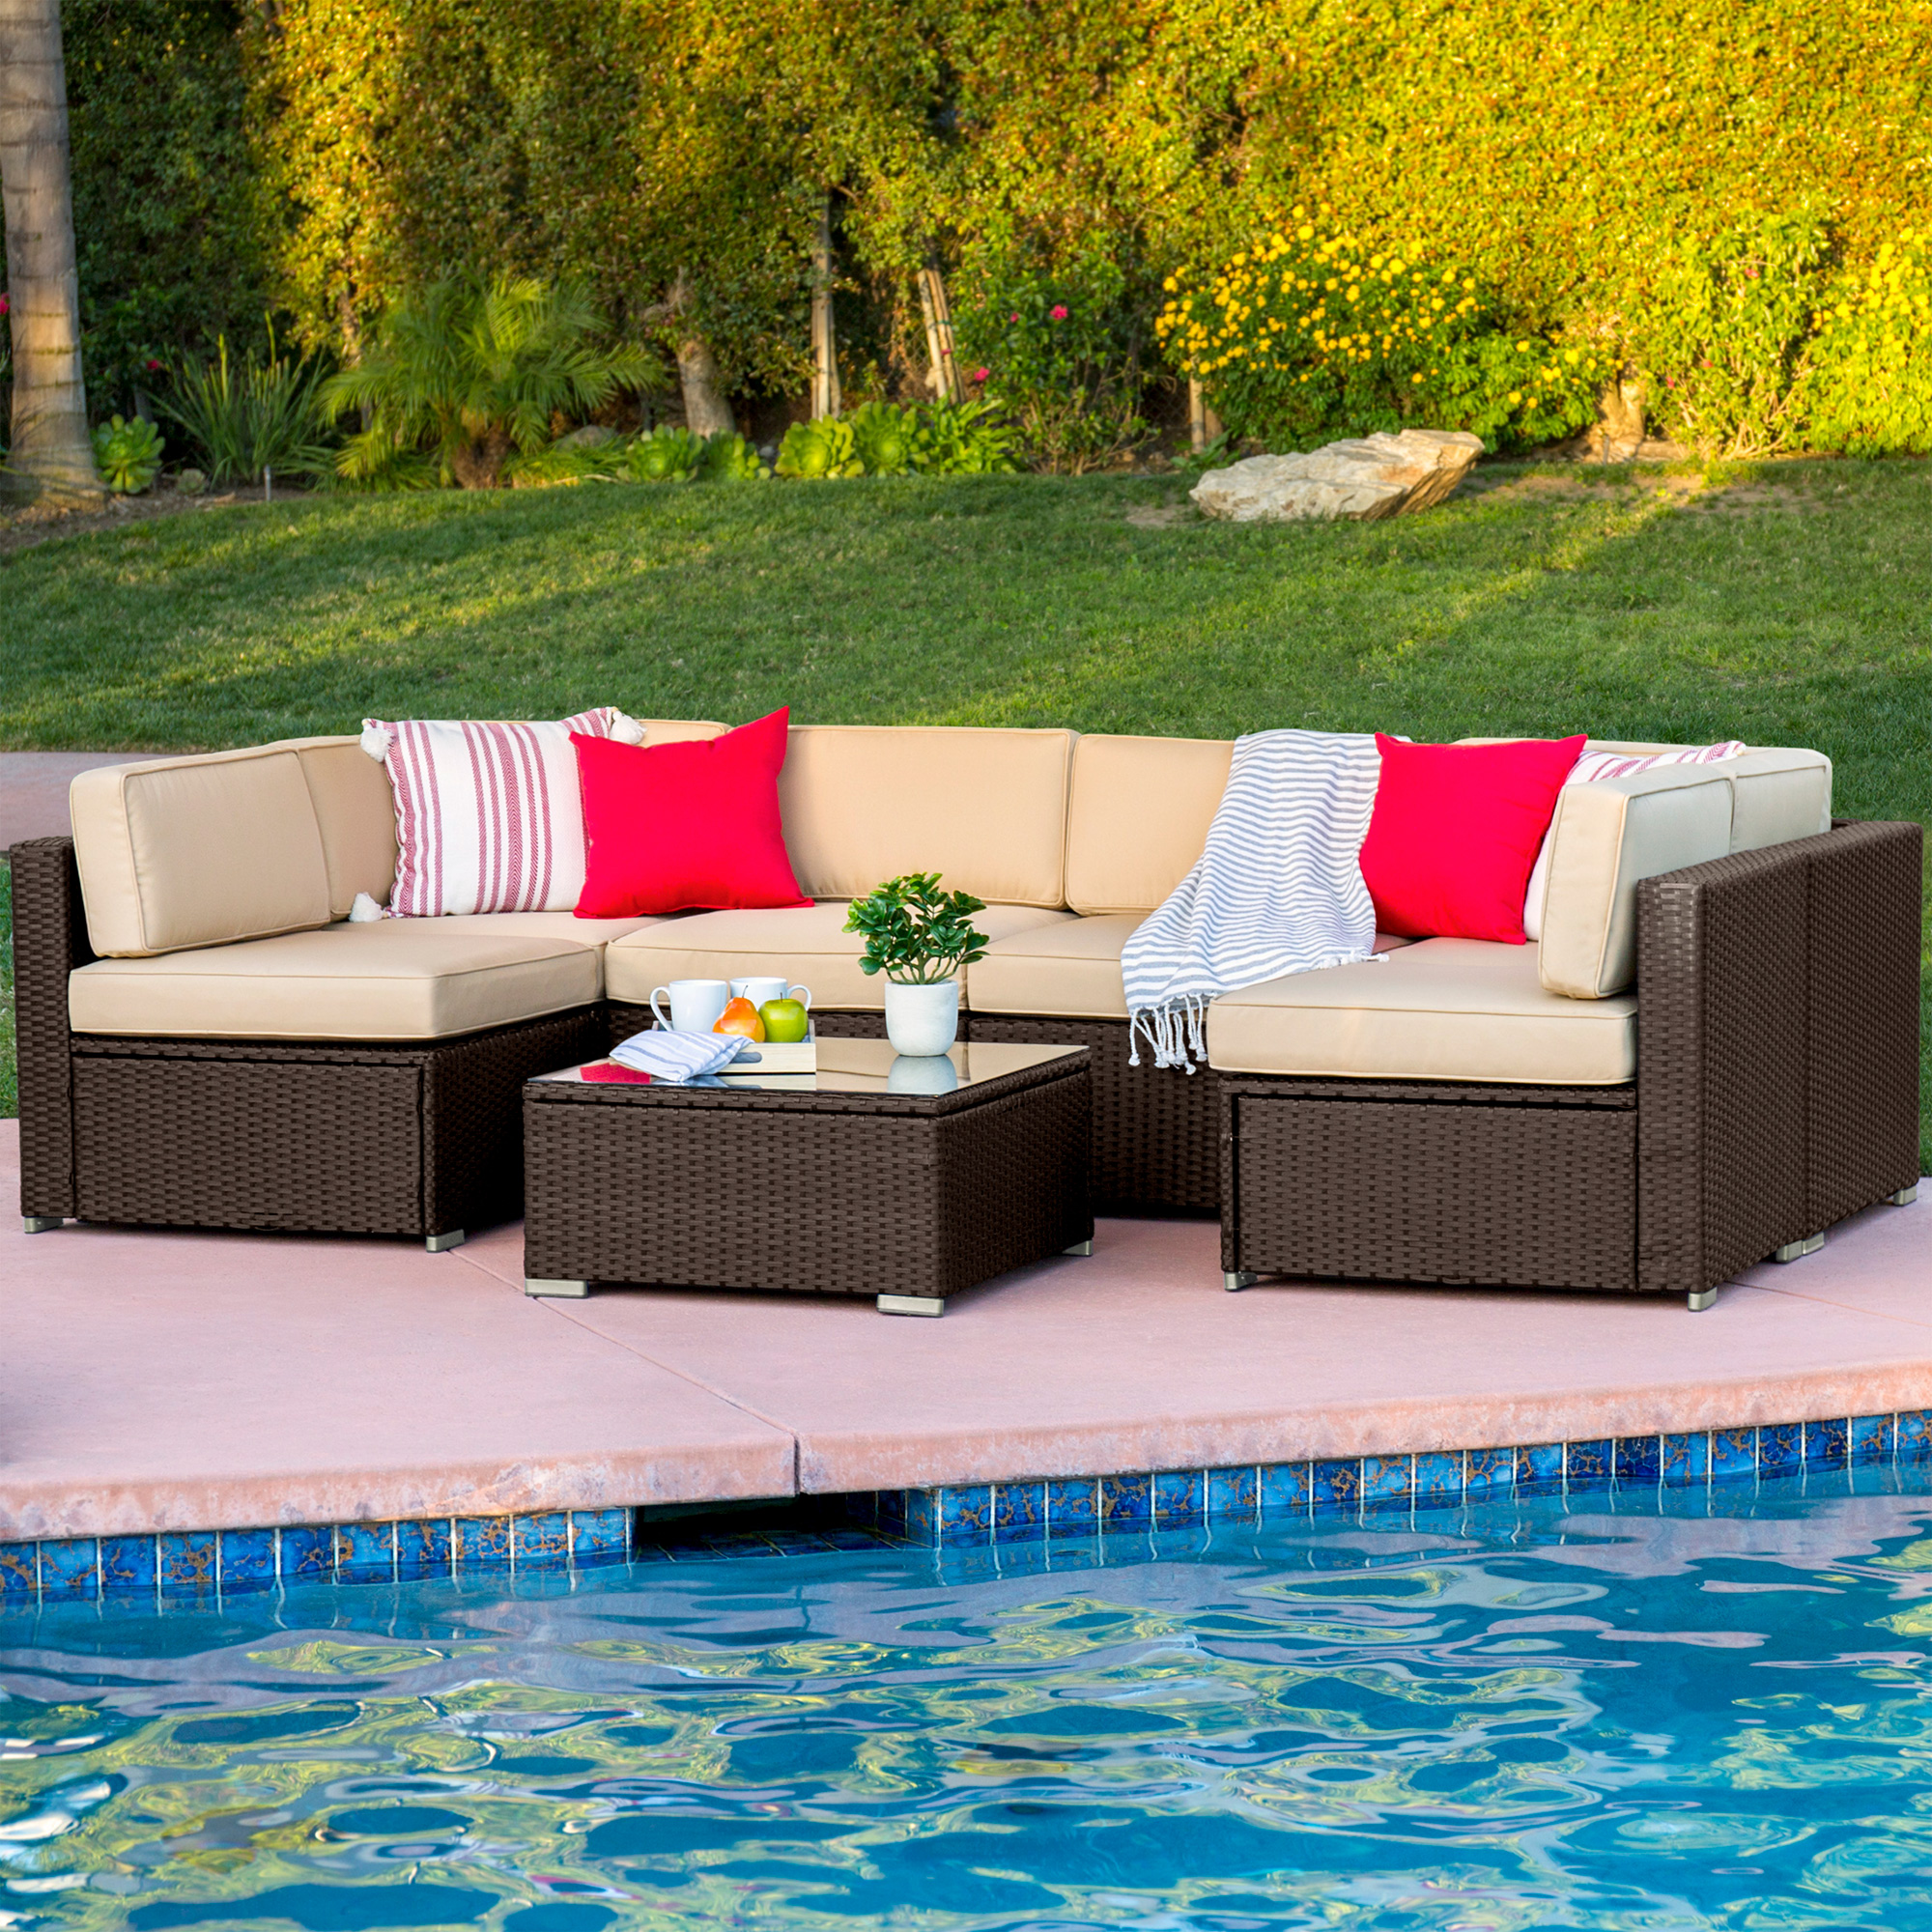 Best Choice Products 7pc Outdoor Patio Garden Wicker Furniture Rattan Sofa Set Sectional